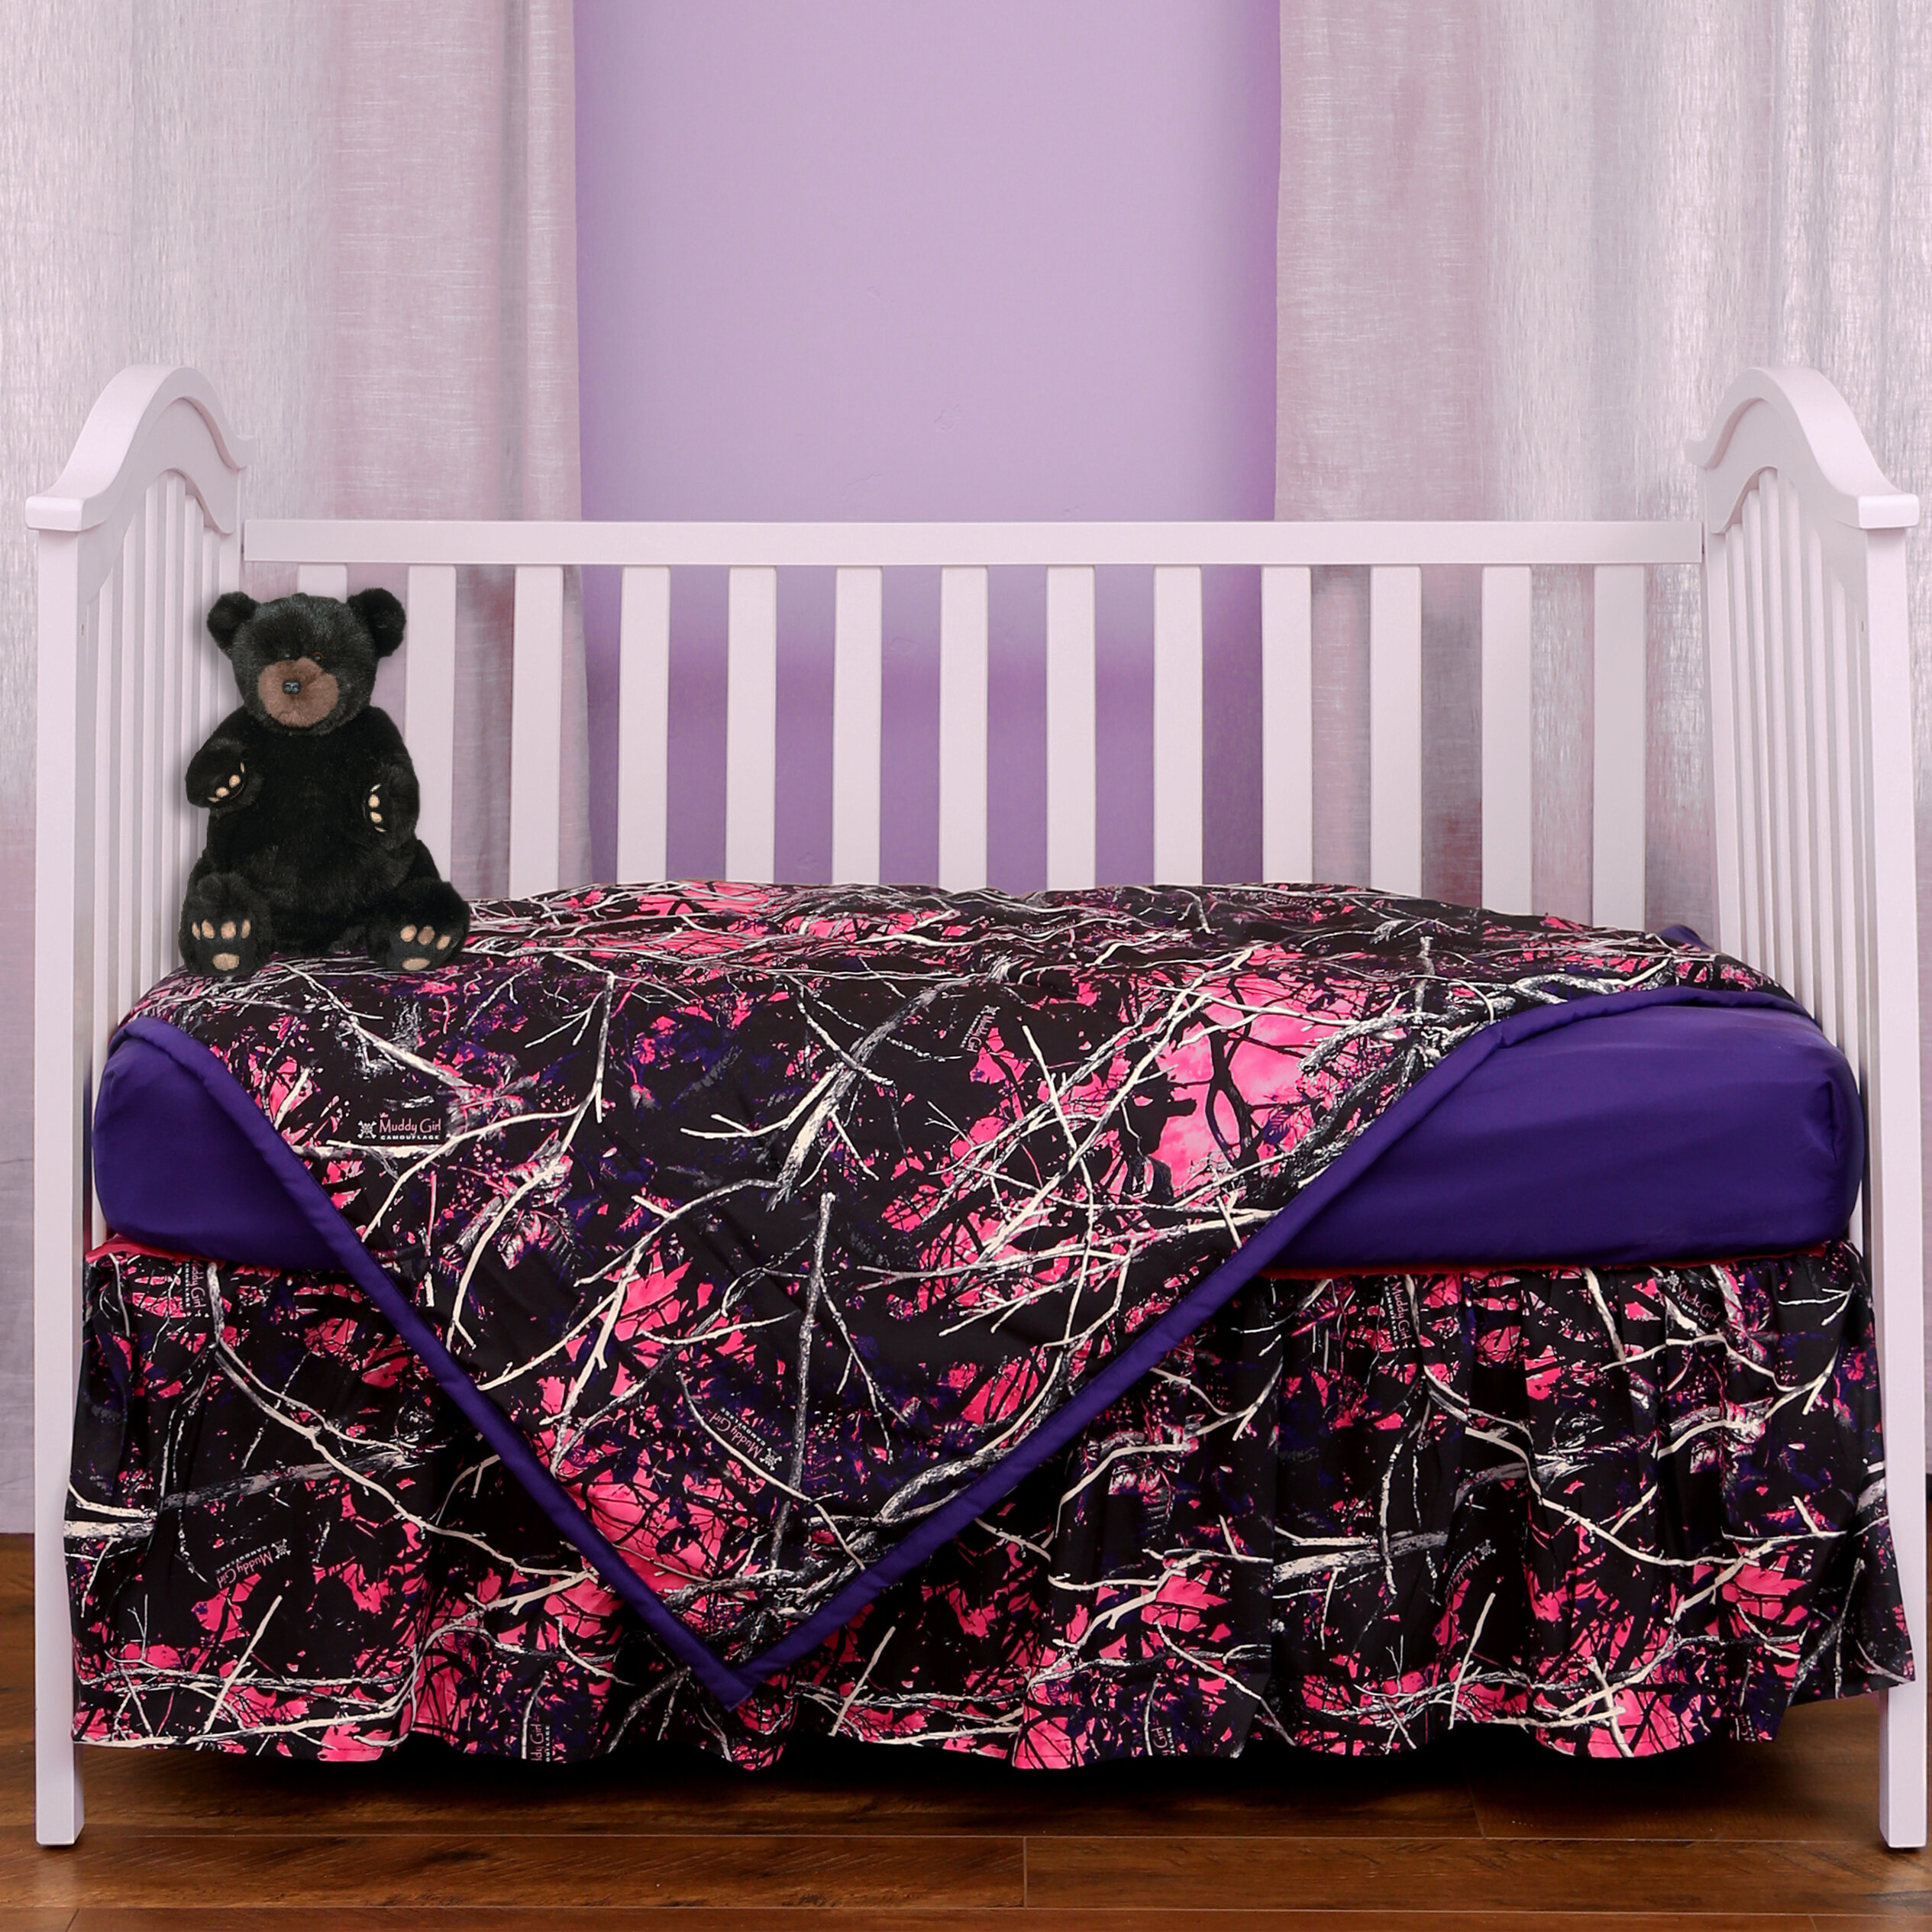 Muddy 3 Piece Crib Bedding Set